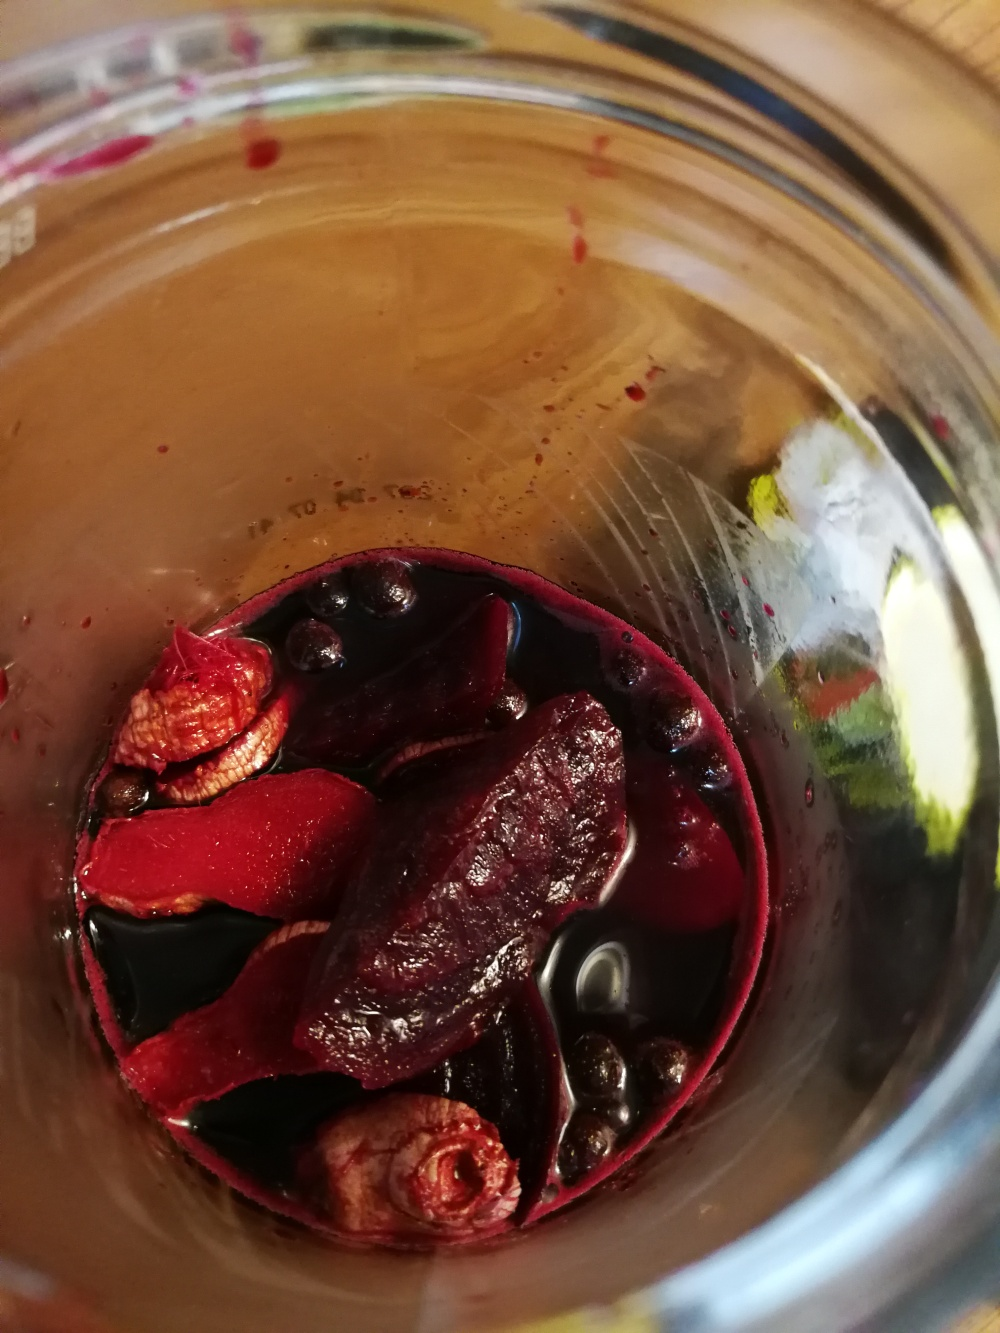 Pickled beets in a jar.